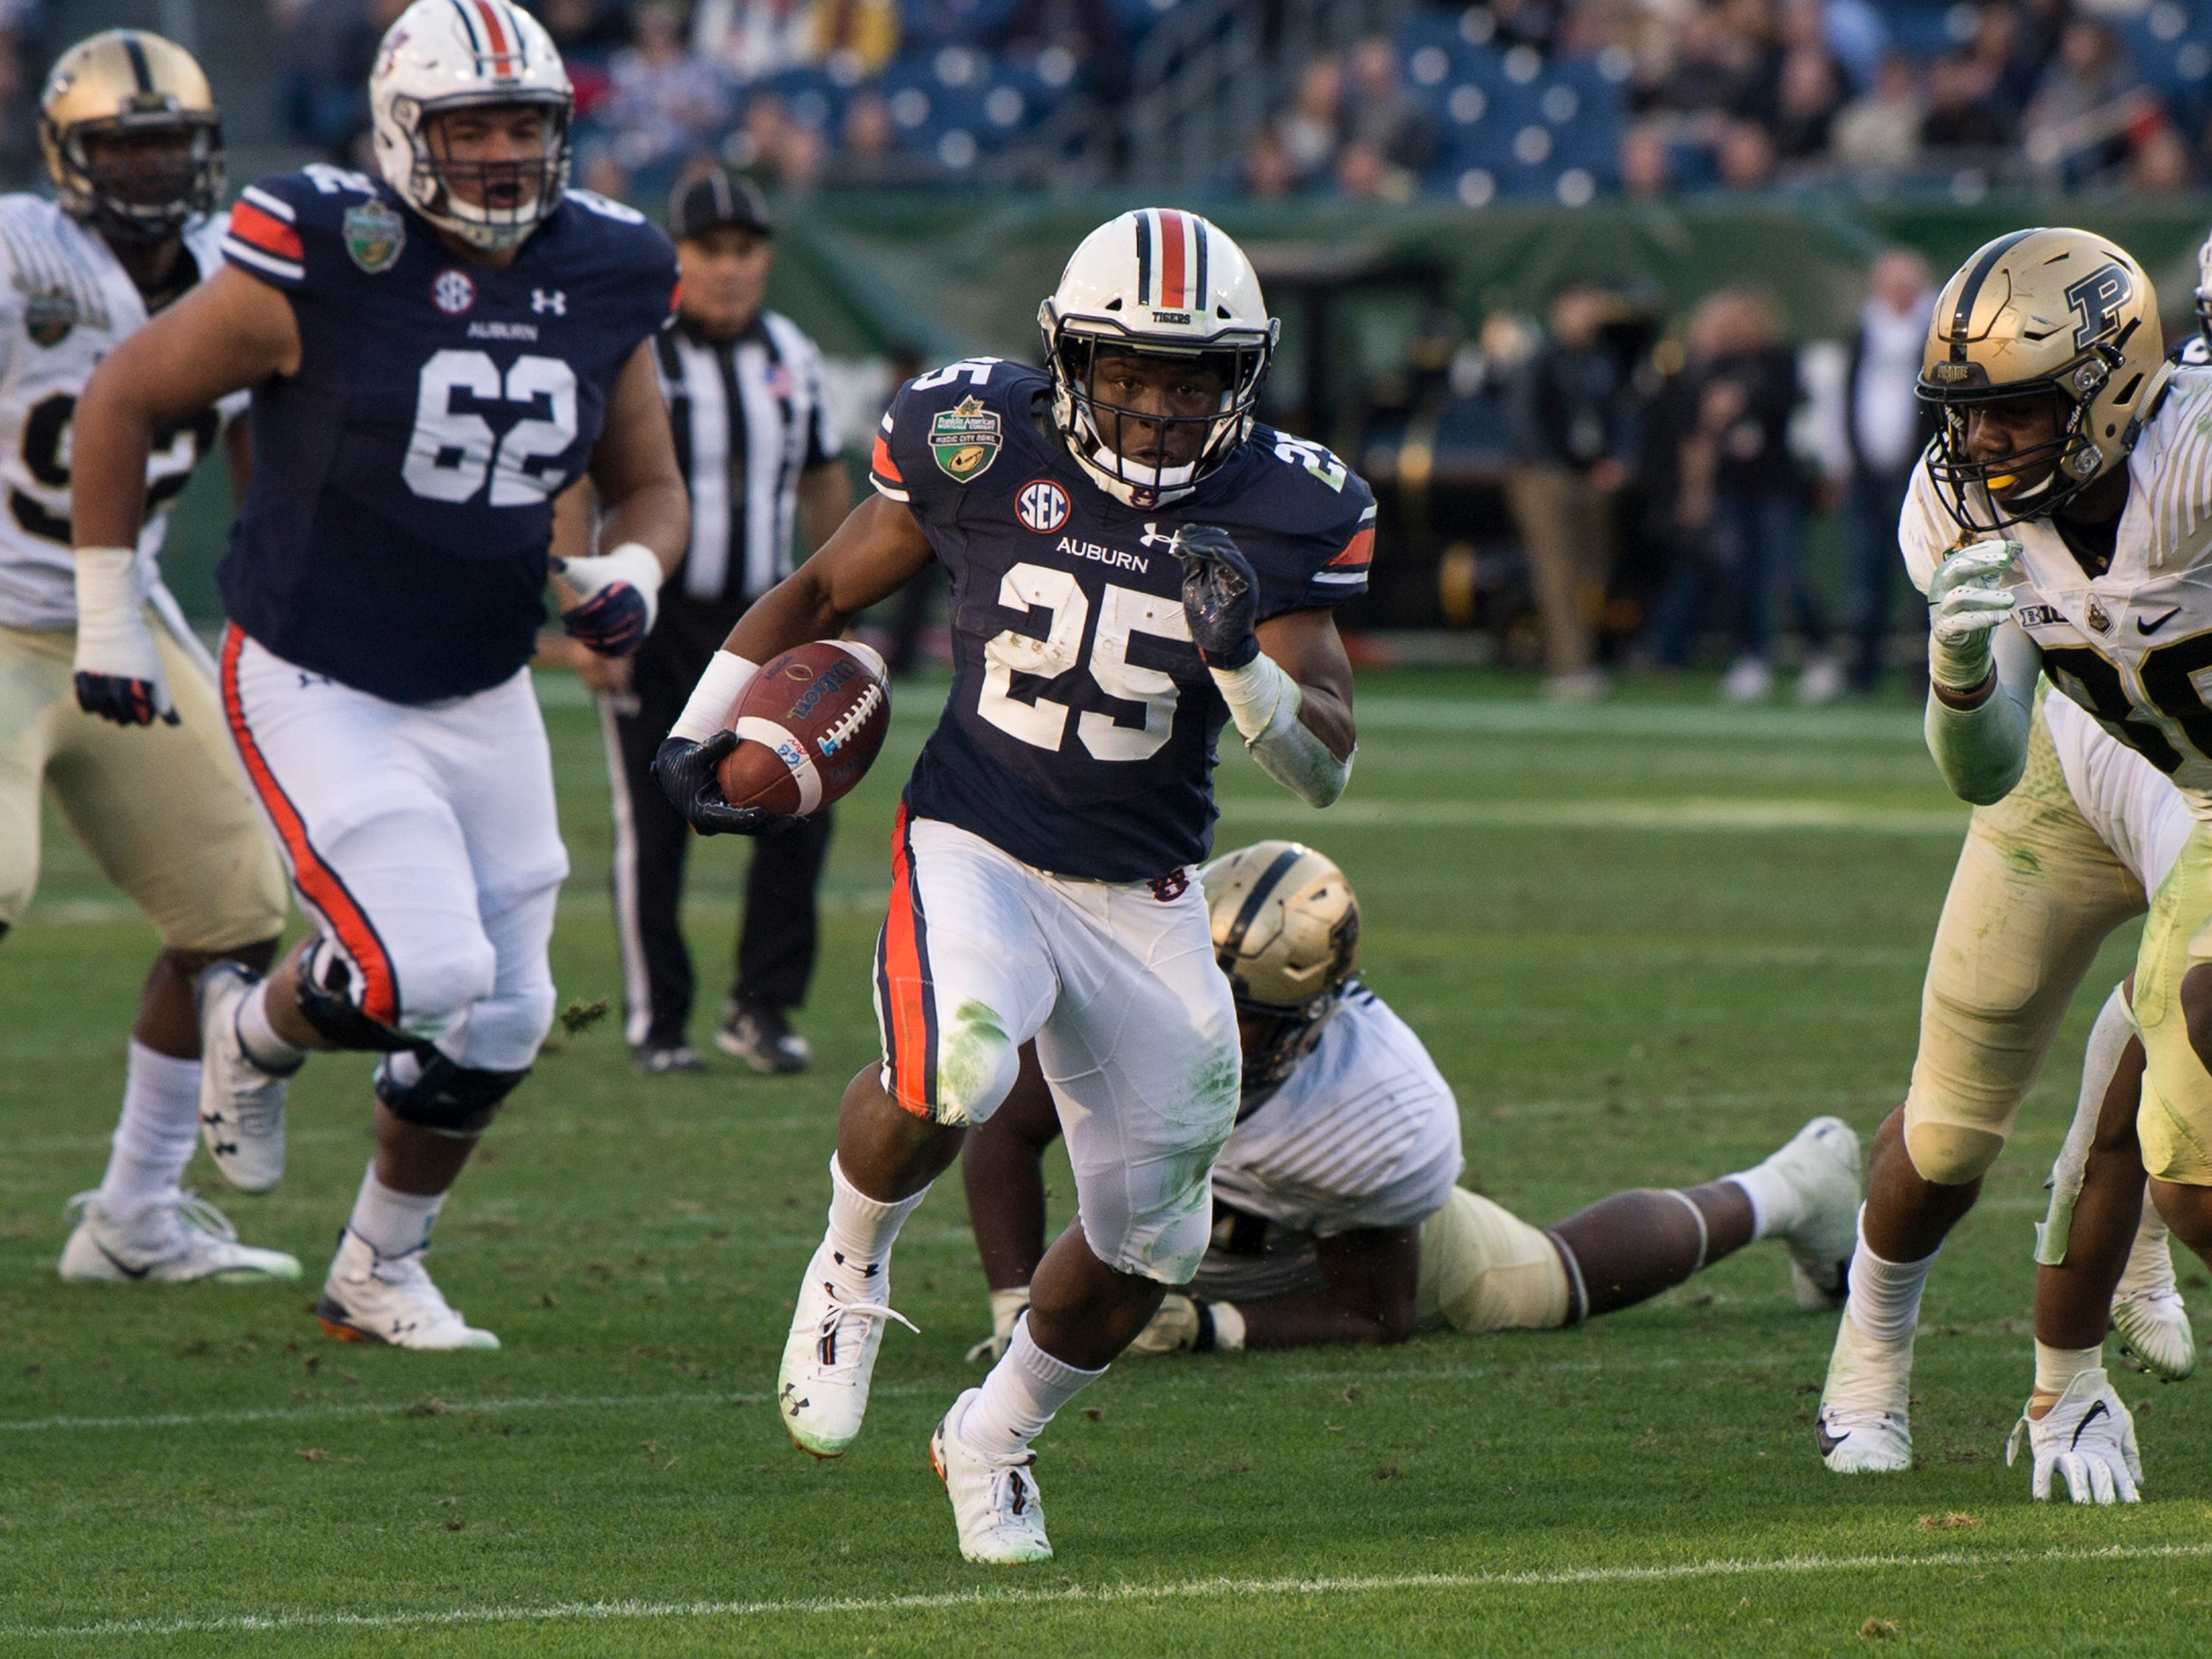 Auburn running back Shaun Shivers (25) runs the ball up the middle during the Music City Bowl at Nissan Stadium in Nashville, Tenn., on Friday, Dec. 28, 2018. Auburn defeated Purdue 63-14.